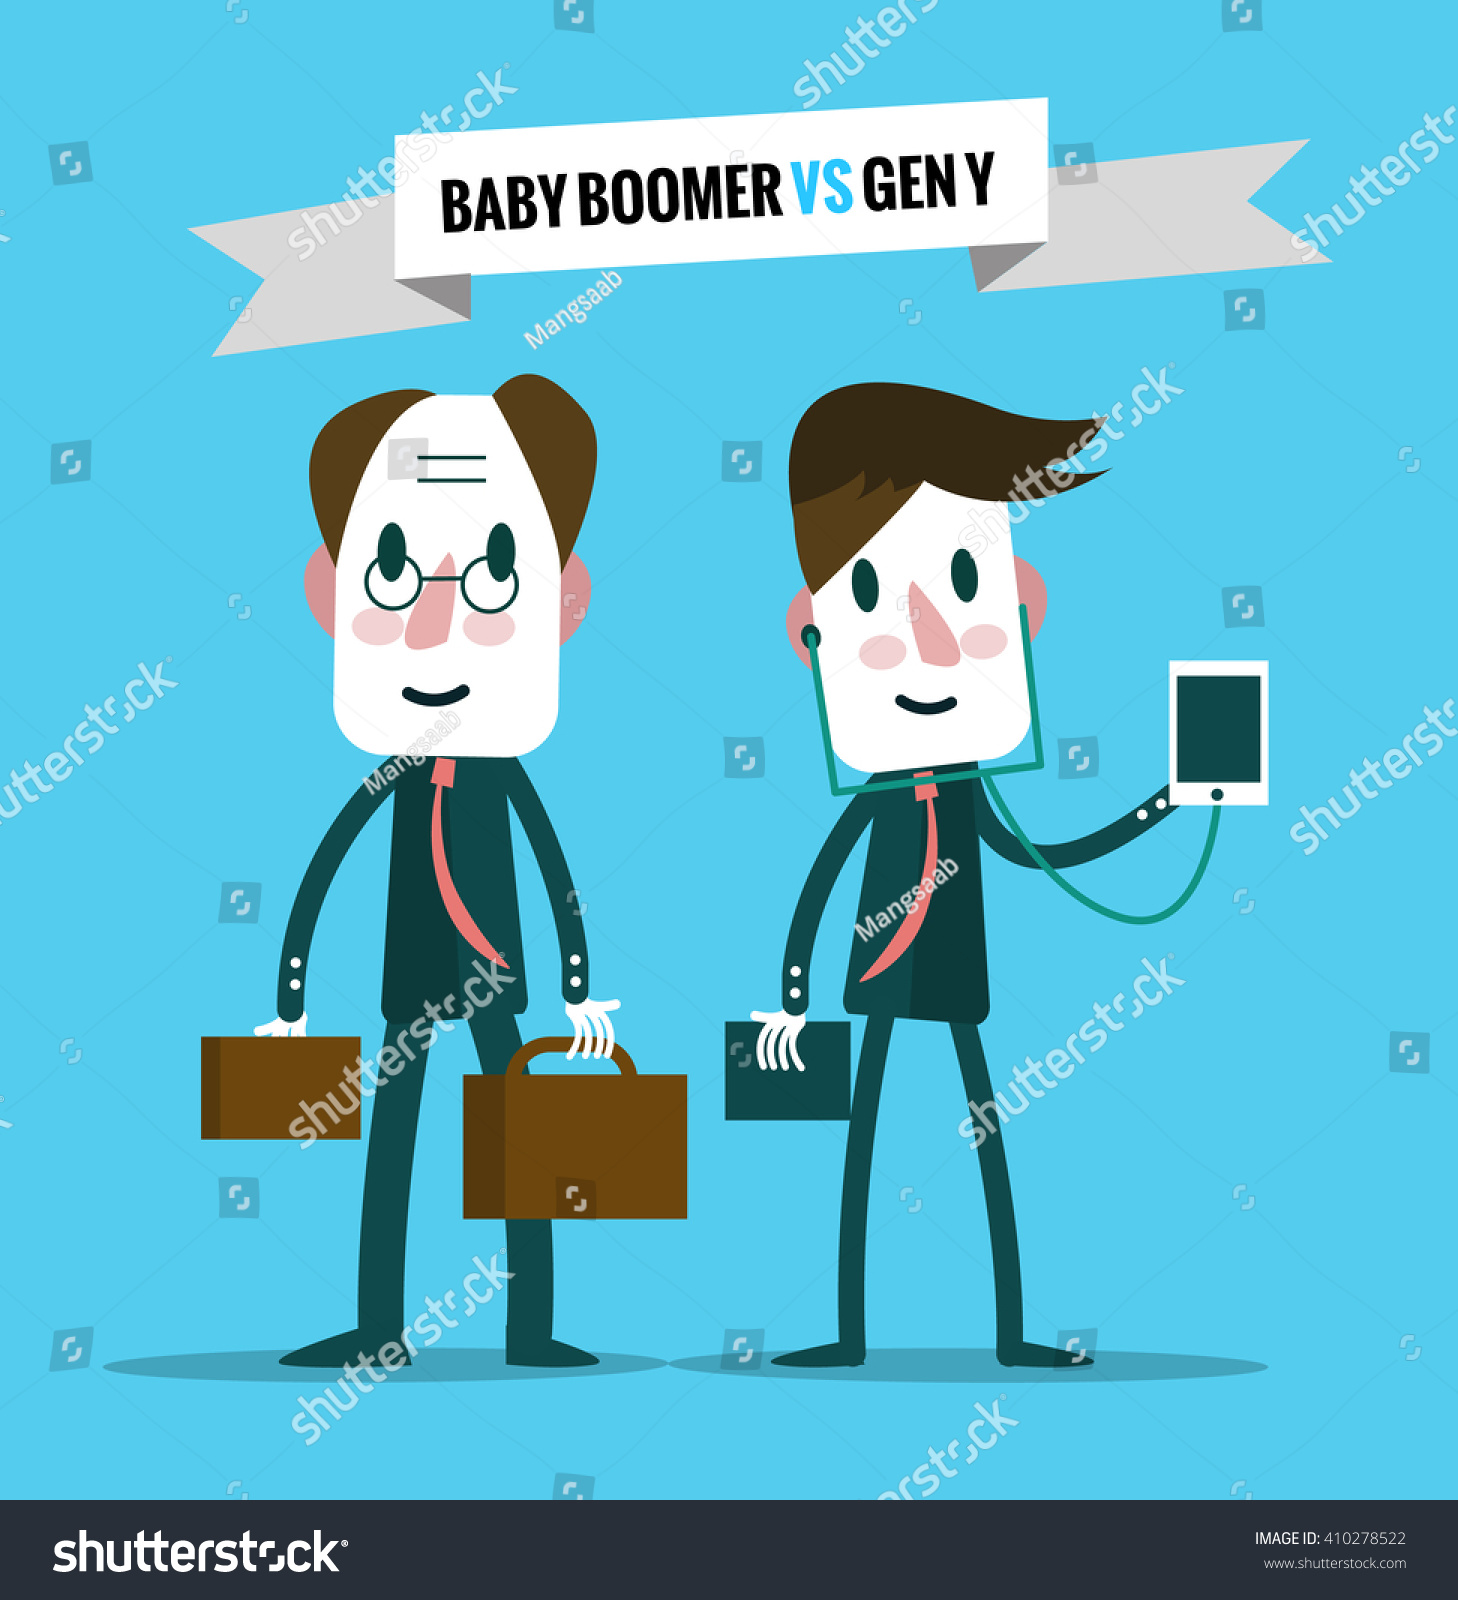 baby boomers vs generation y business stock vector  baby boomers vs generation y business human resource flat character design vector illustration